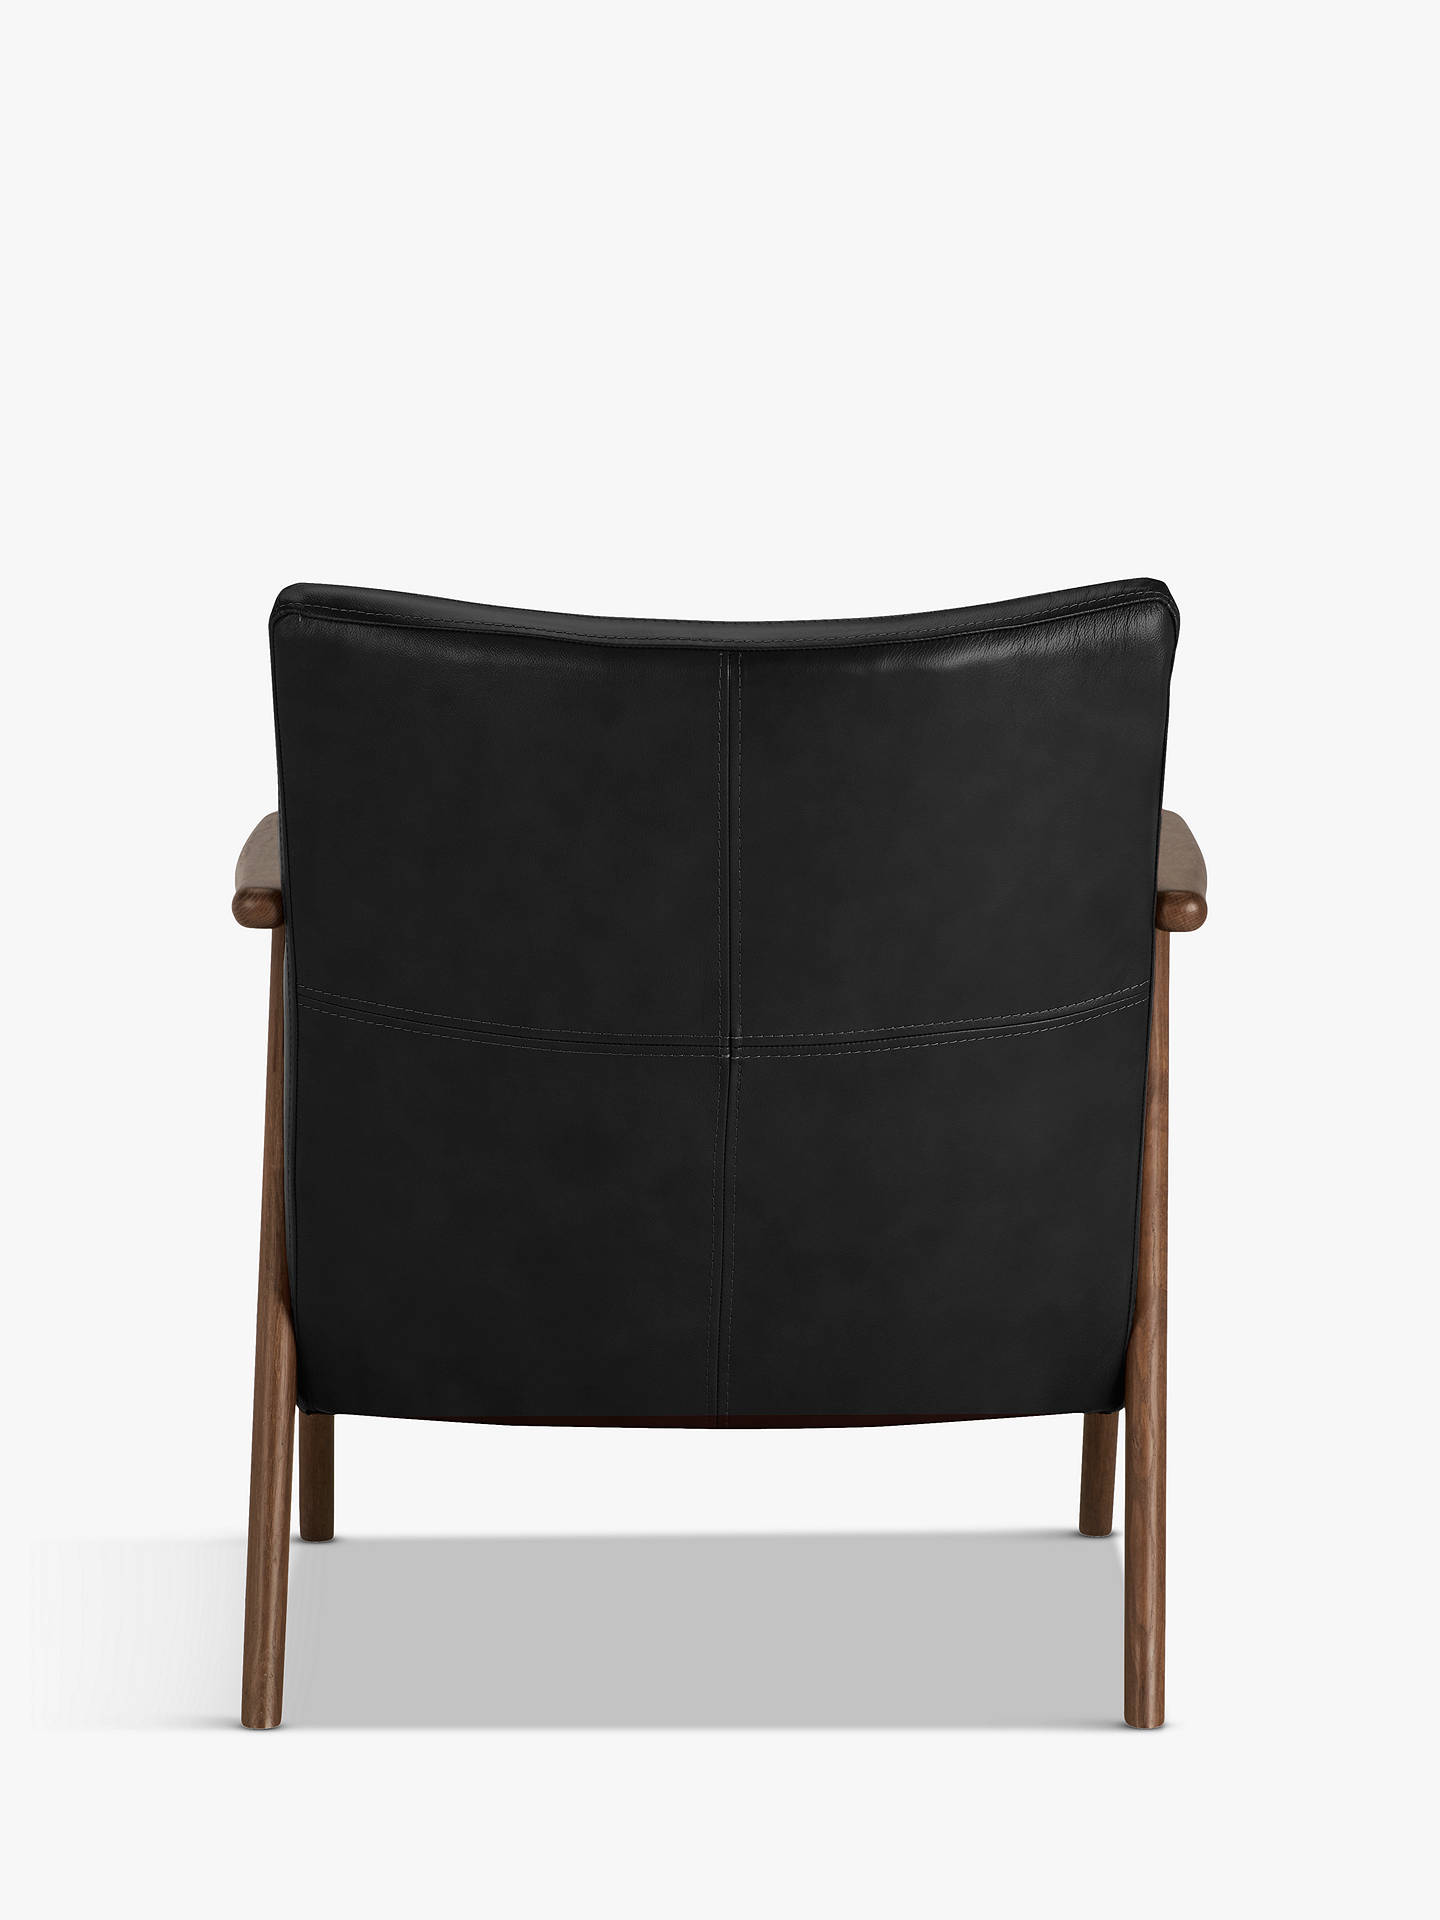 Buy John Lewis & Partners Hendricks Leather Armchair, Dark Wood Frame, Contempo Black Online at johnlewis.com